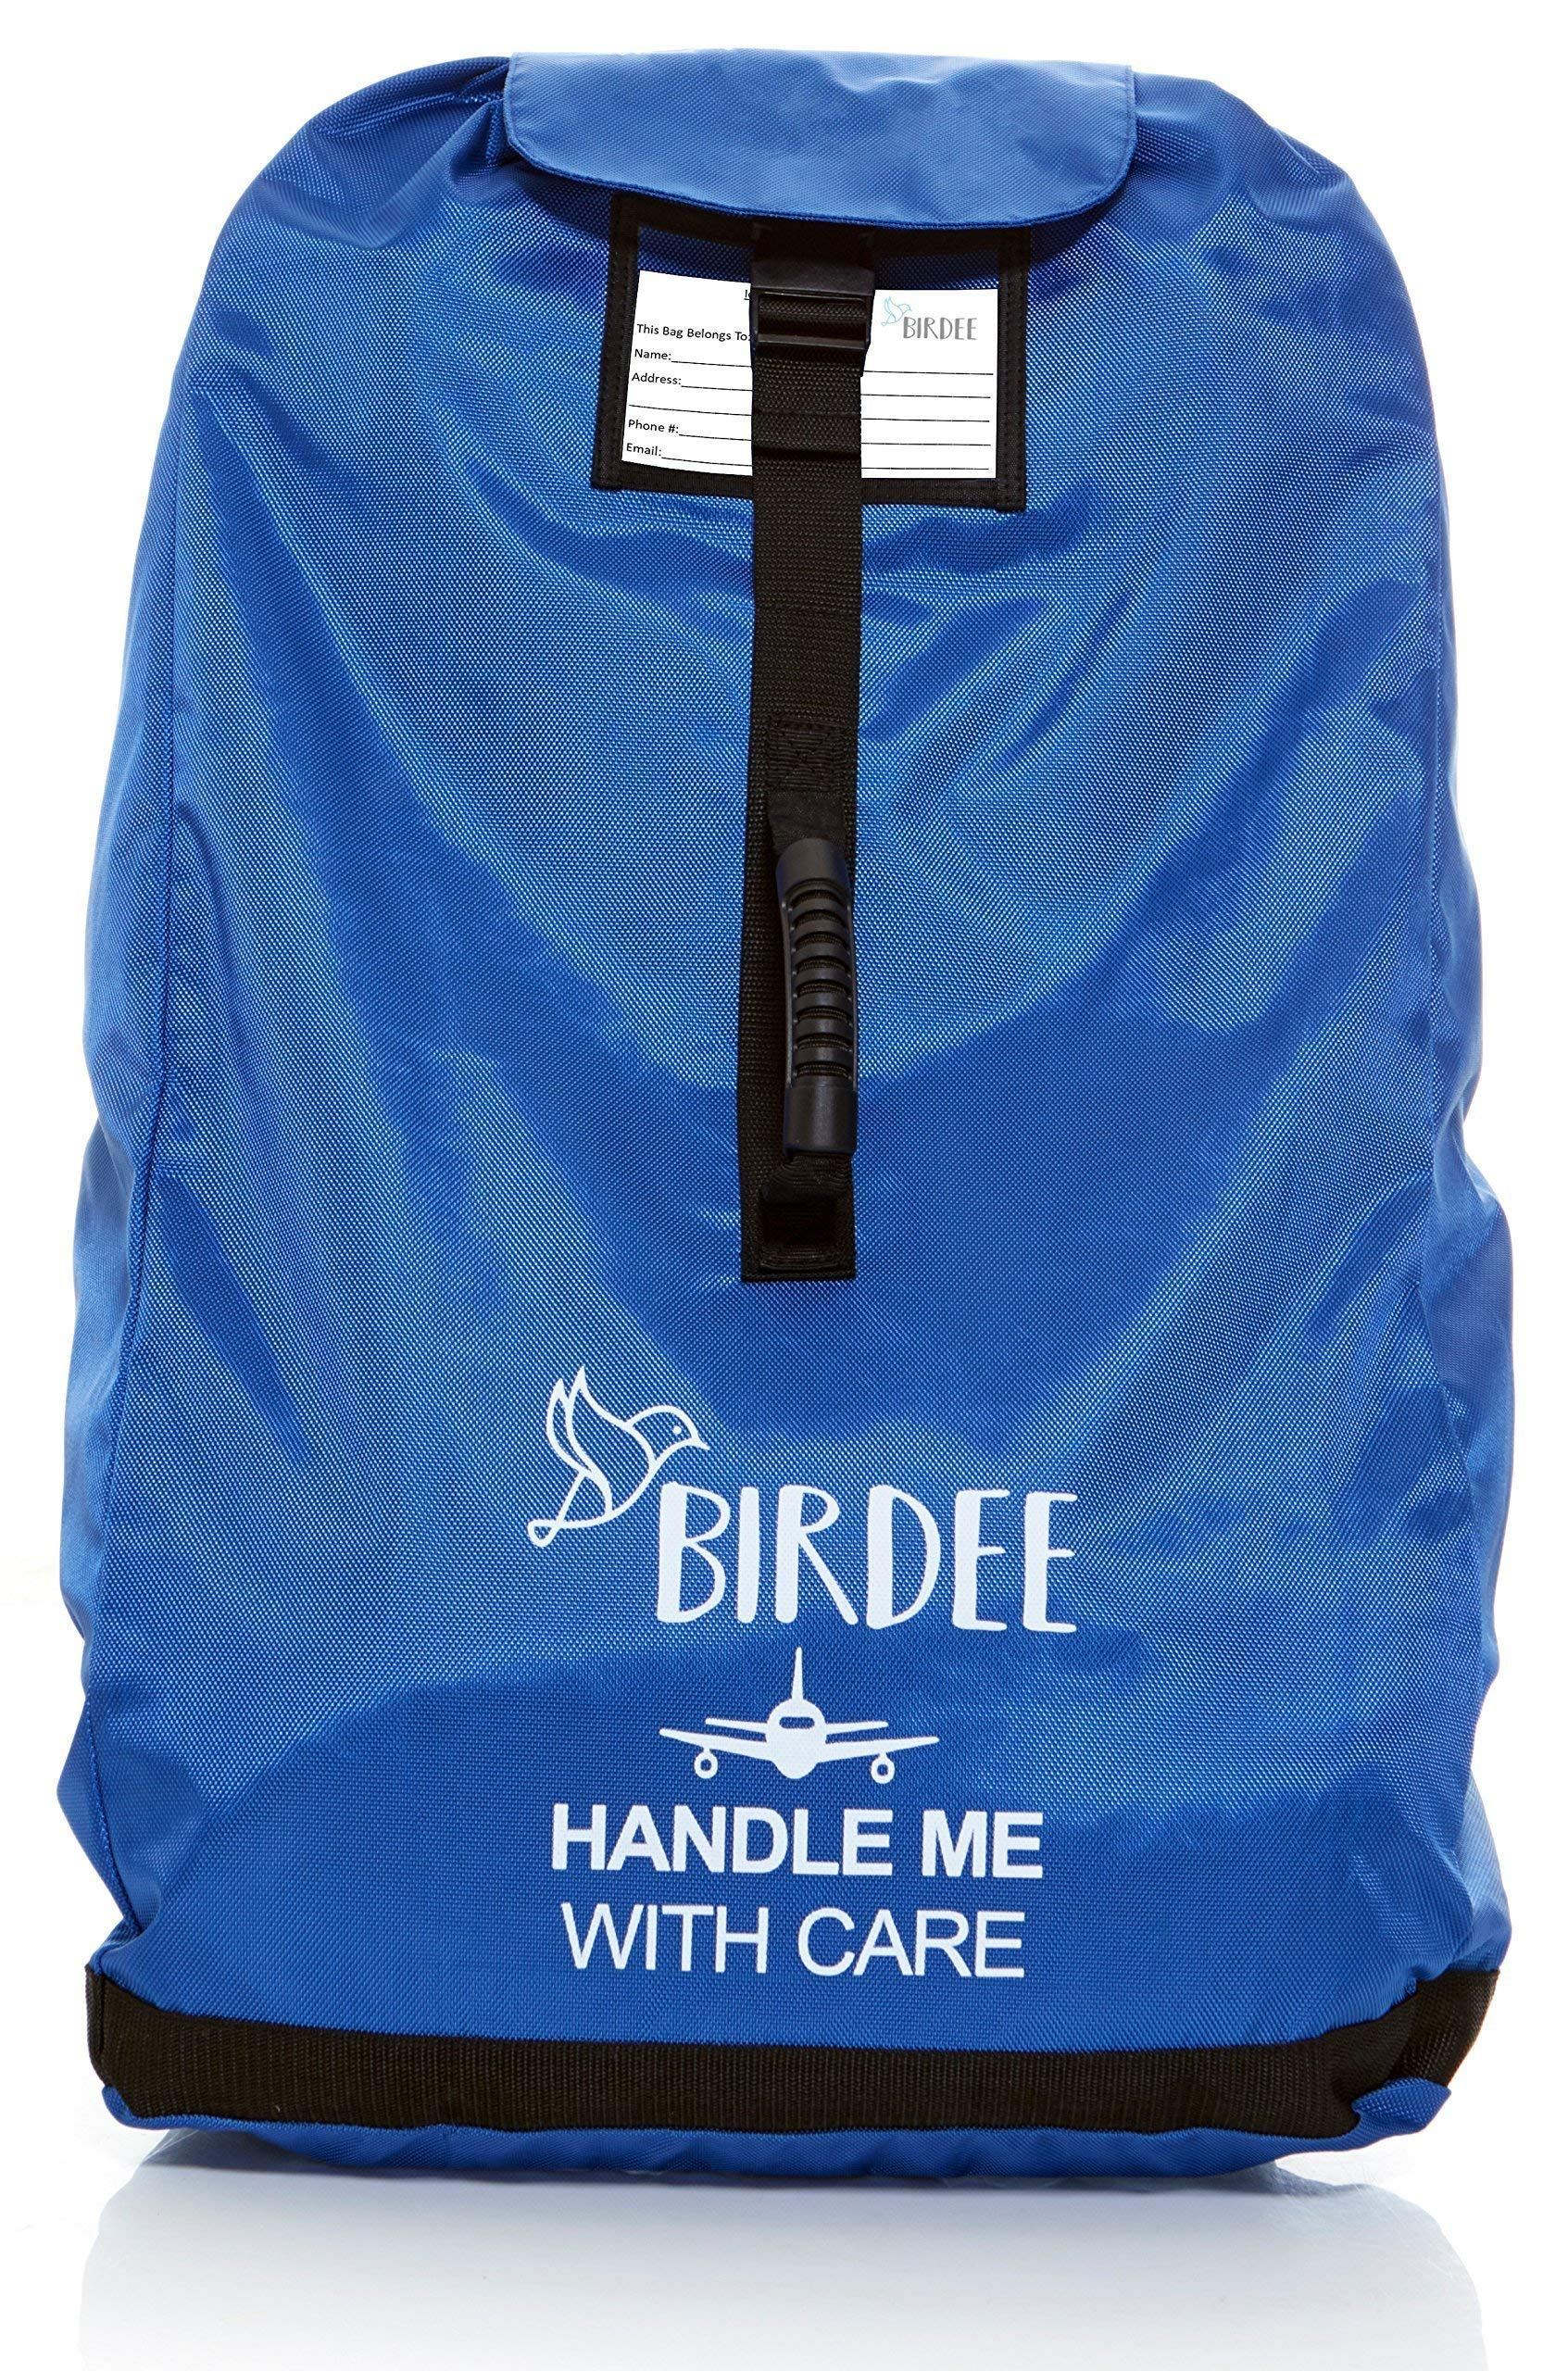 Birdee Car Seat Travel Bag for Airport Gate Check and Carrier for Travel